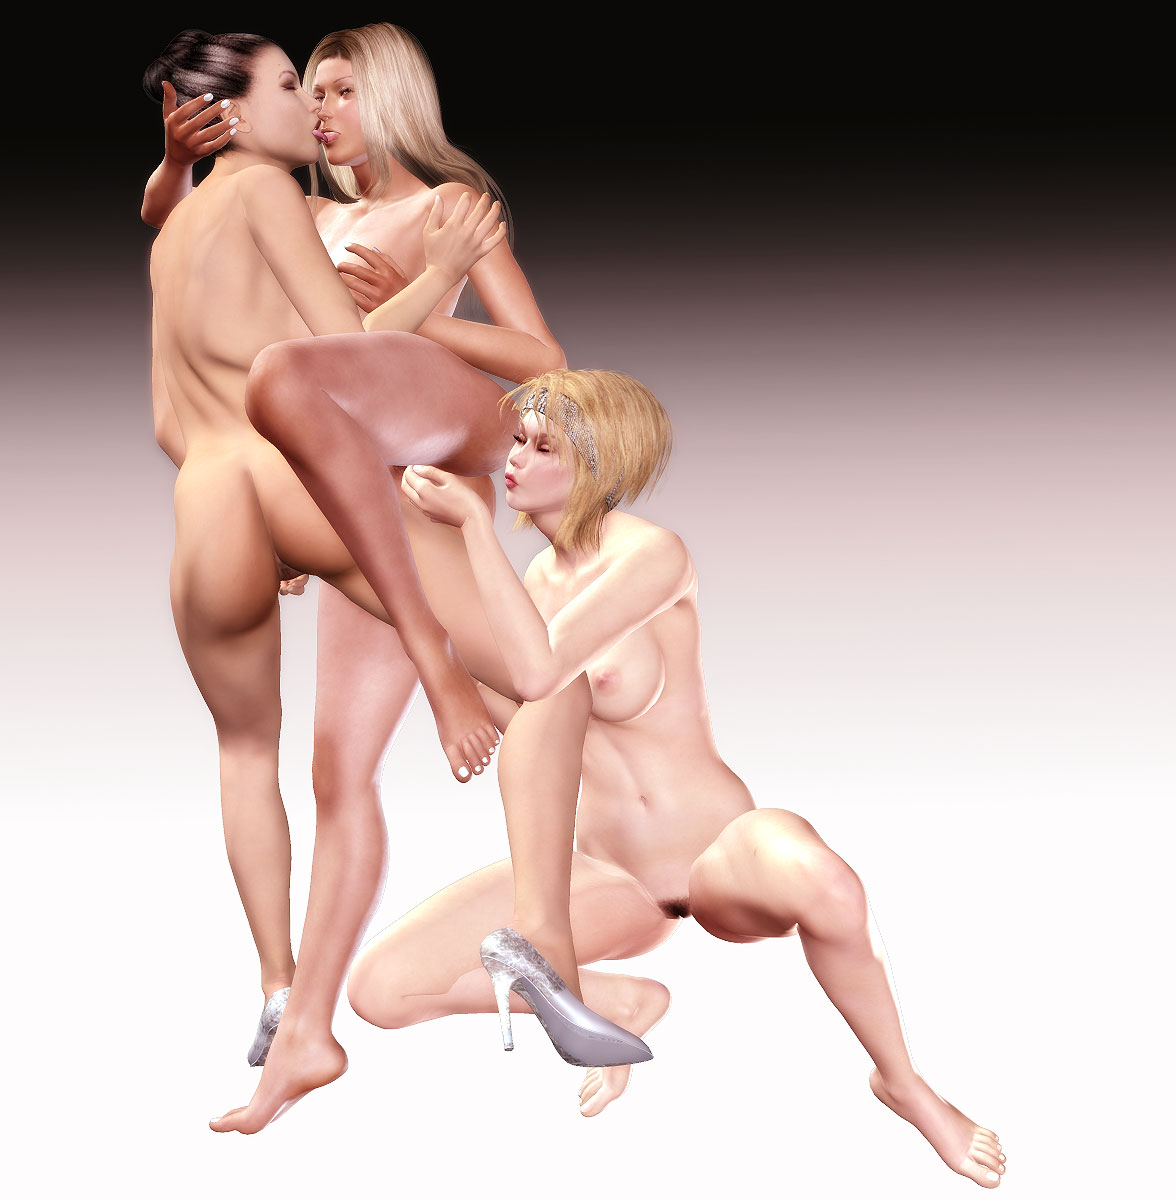 Naked animasi 3d 3gp sex scene